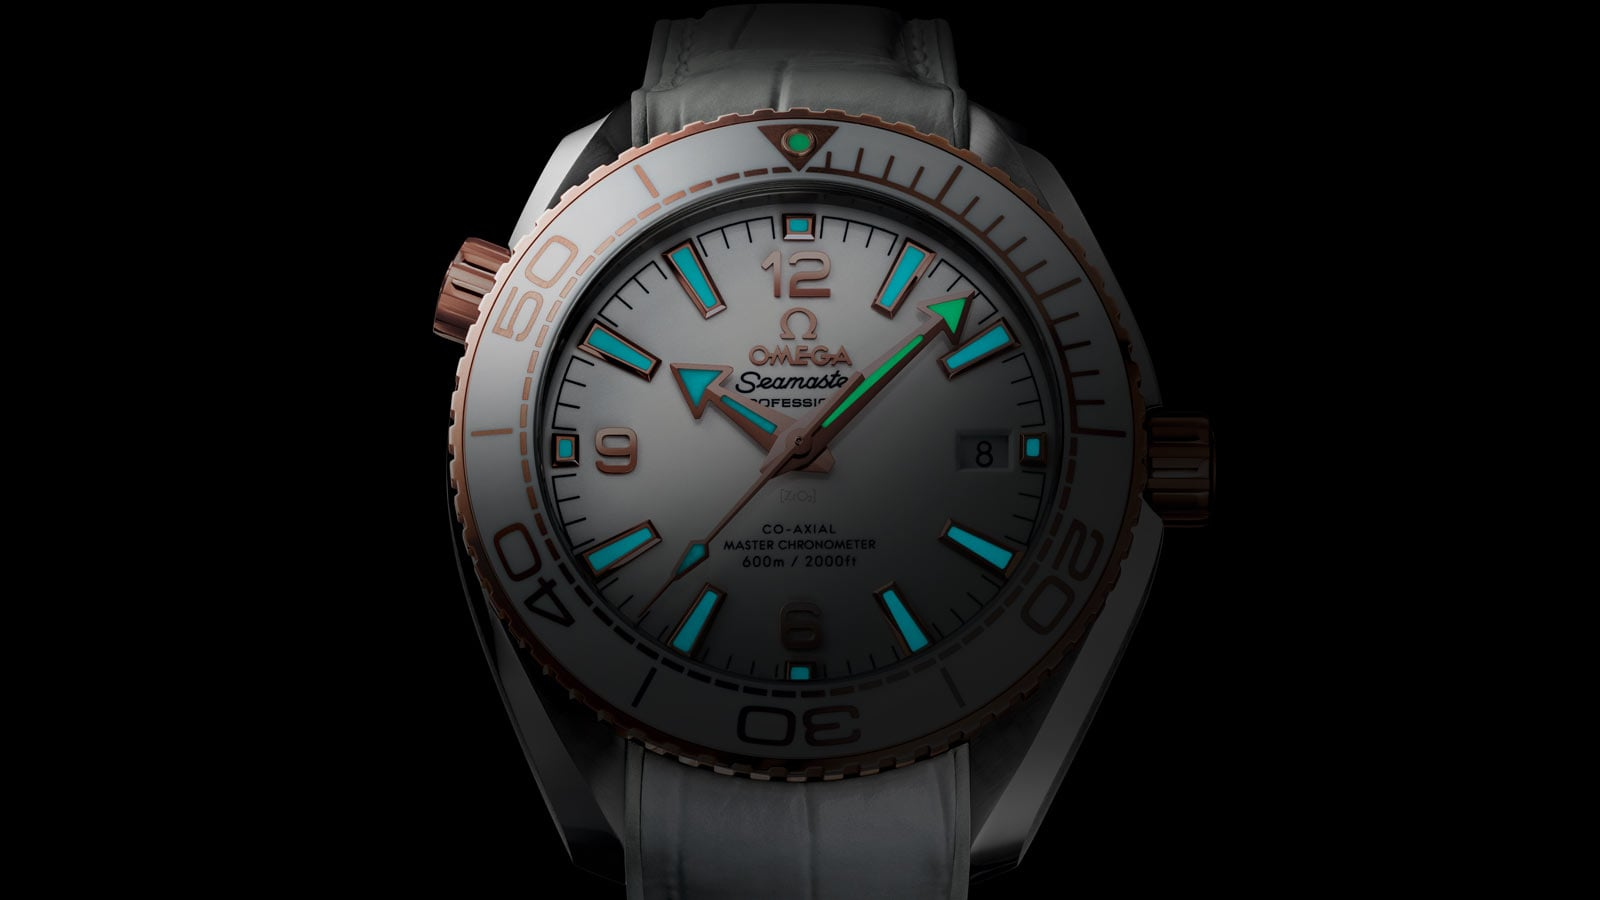 Close view of the face of the Planet Ocean 600 M watch with a focus on the indexes, coated with white Super-LumiNova that can be seen in the darkness